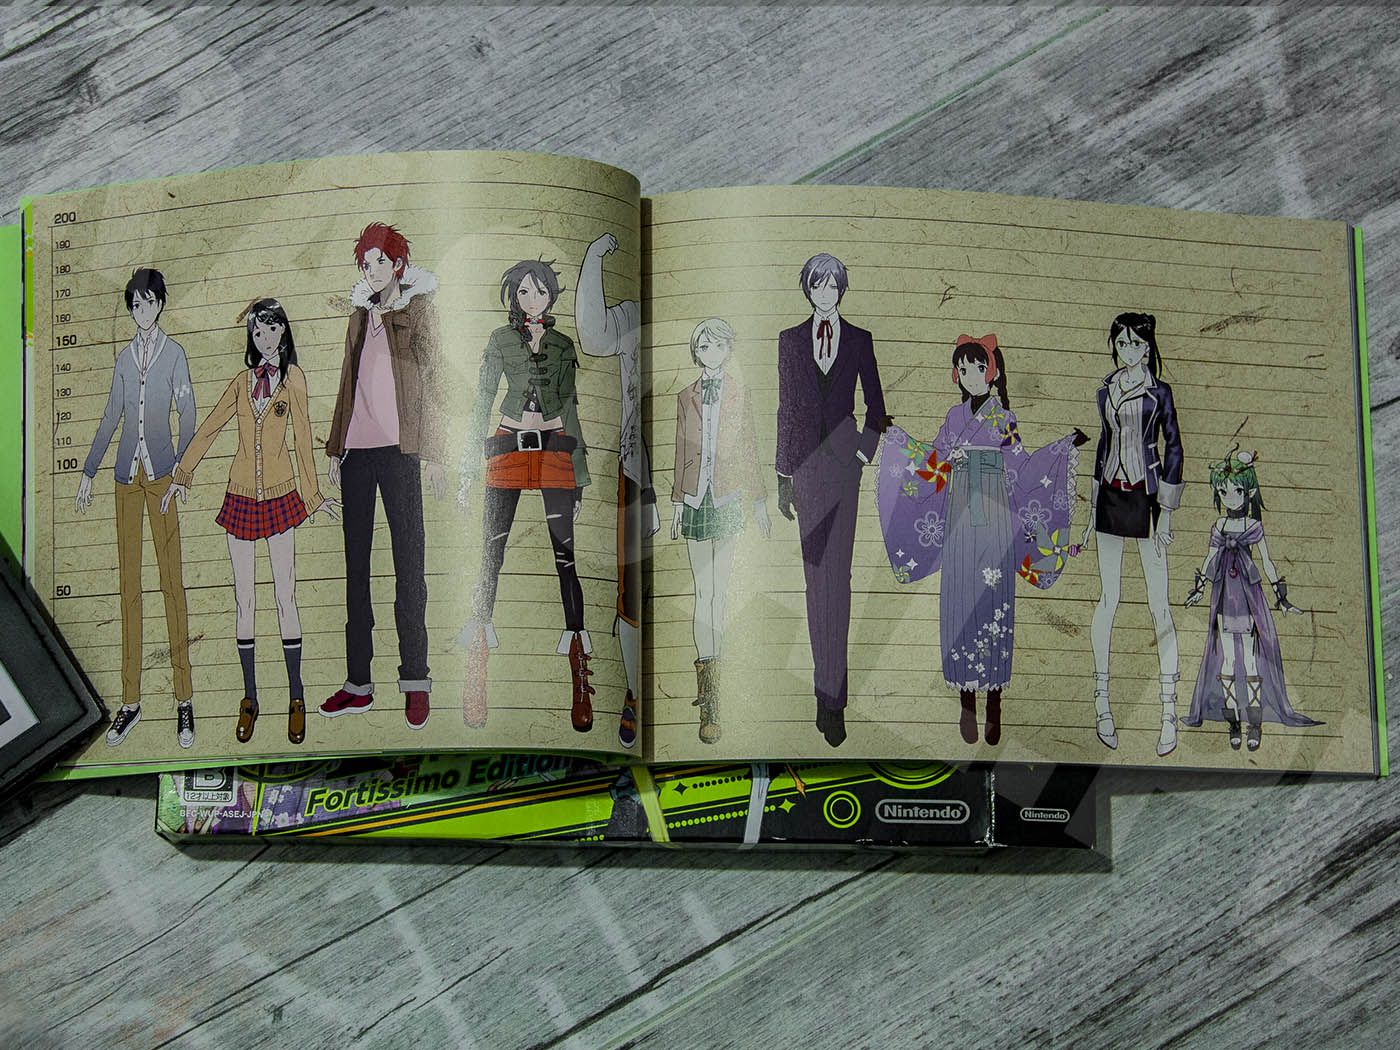 Tokyo Mirage Sessions #FE Fortissimo Edition 2015 - Artbook - Bohaterowie - Wzrost